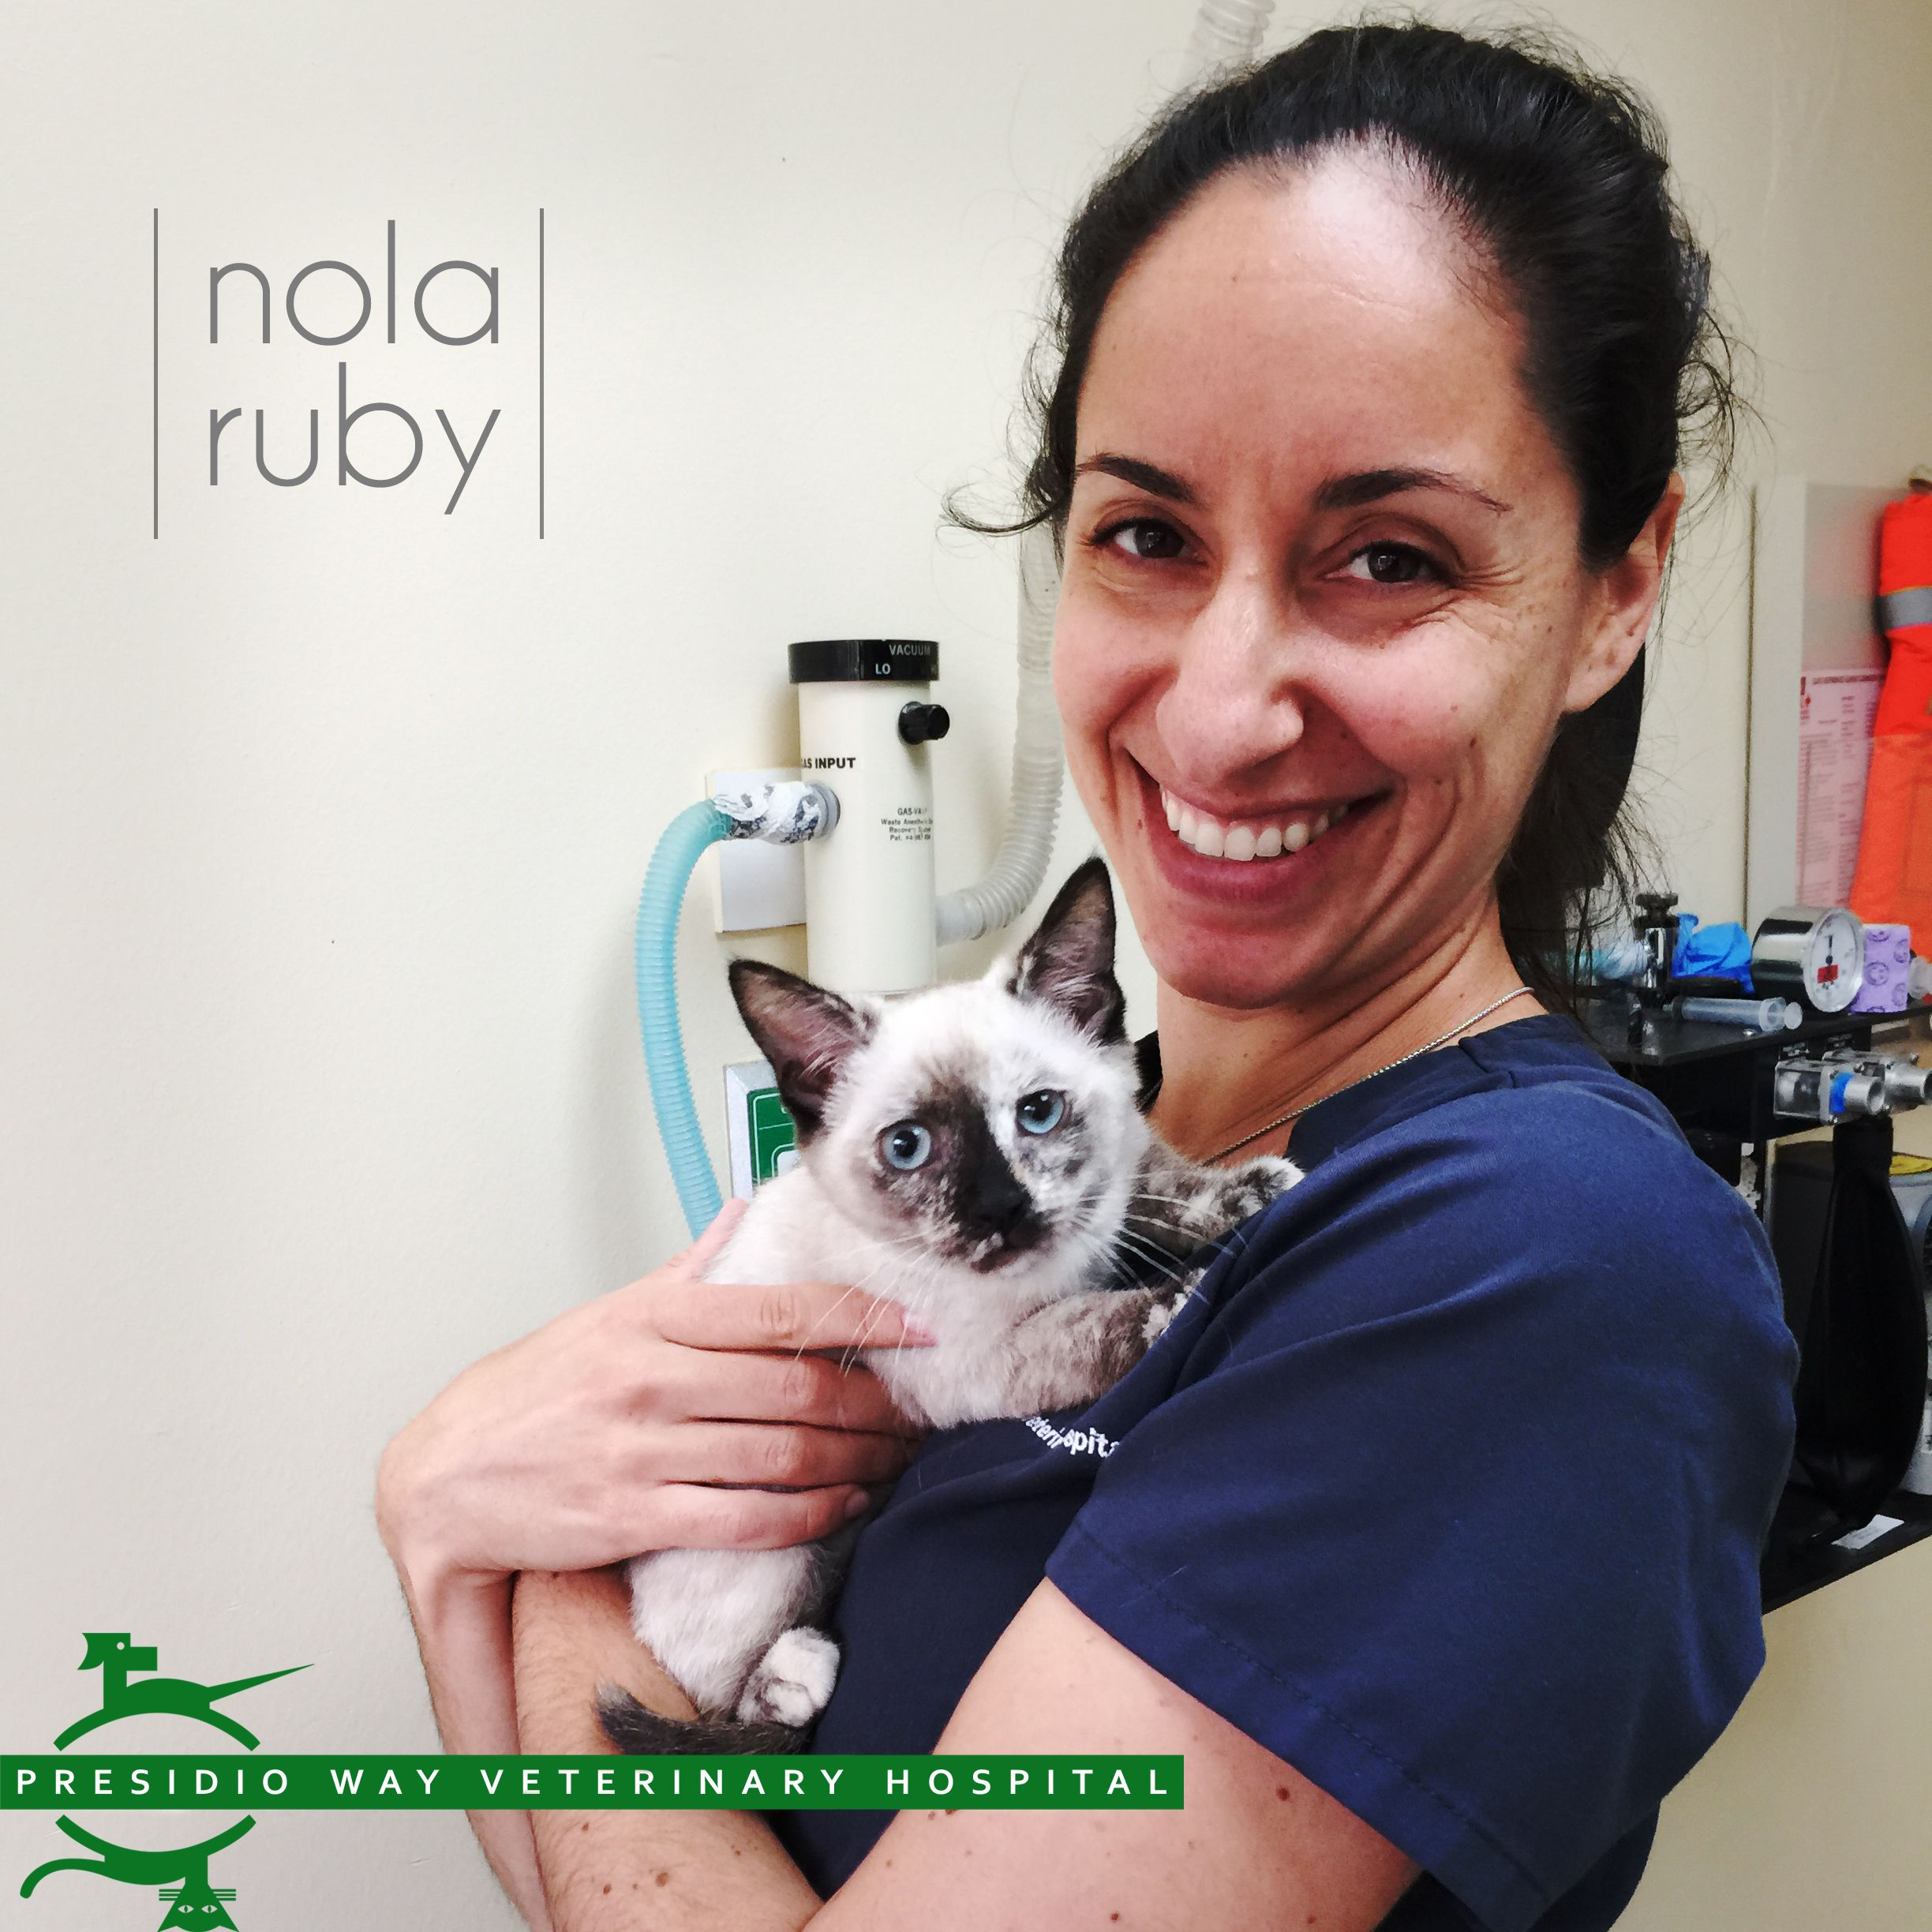 Meet Nola Ruby A Vision Of Sweetness Wrapped Up In The Arms Of Dr Kaila Helmer Don T You Think This 16 Week Siam Veterinary Hospital Veterinary Veterinarian